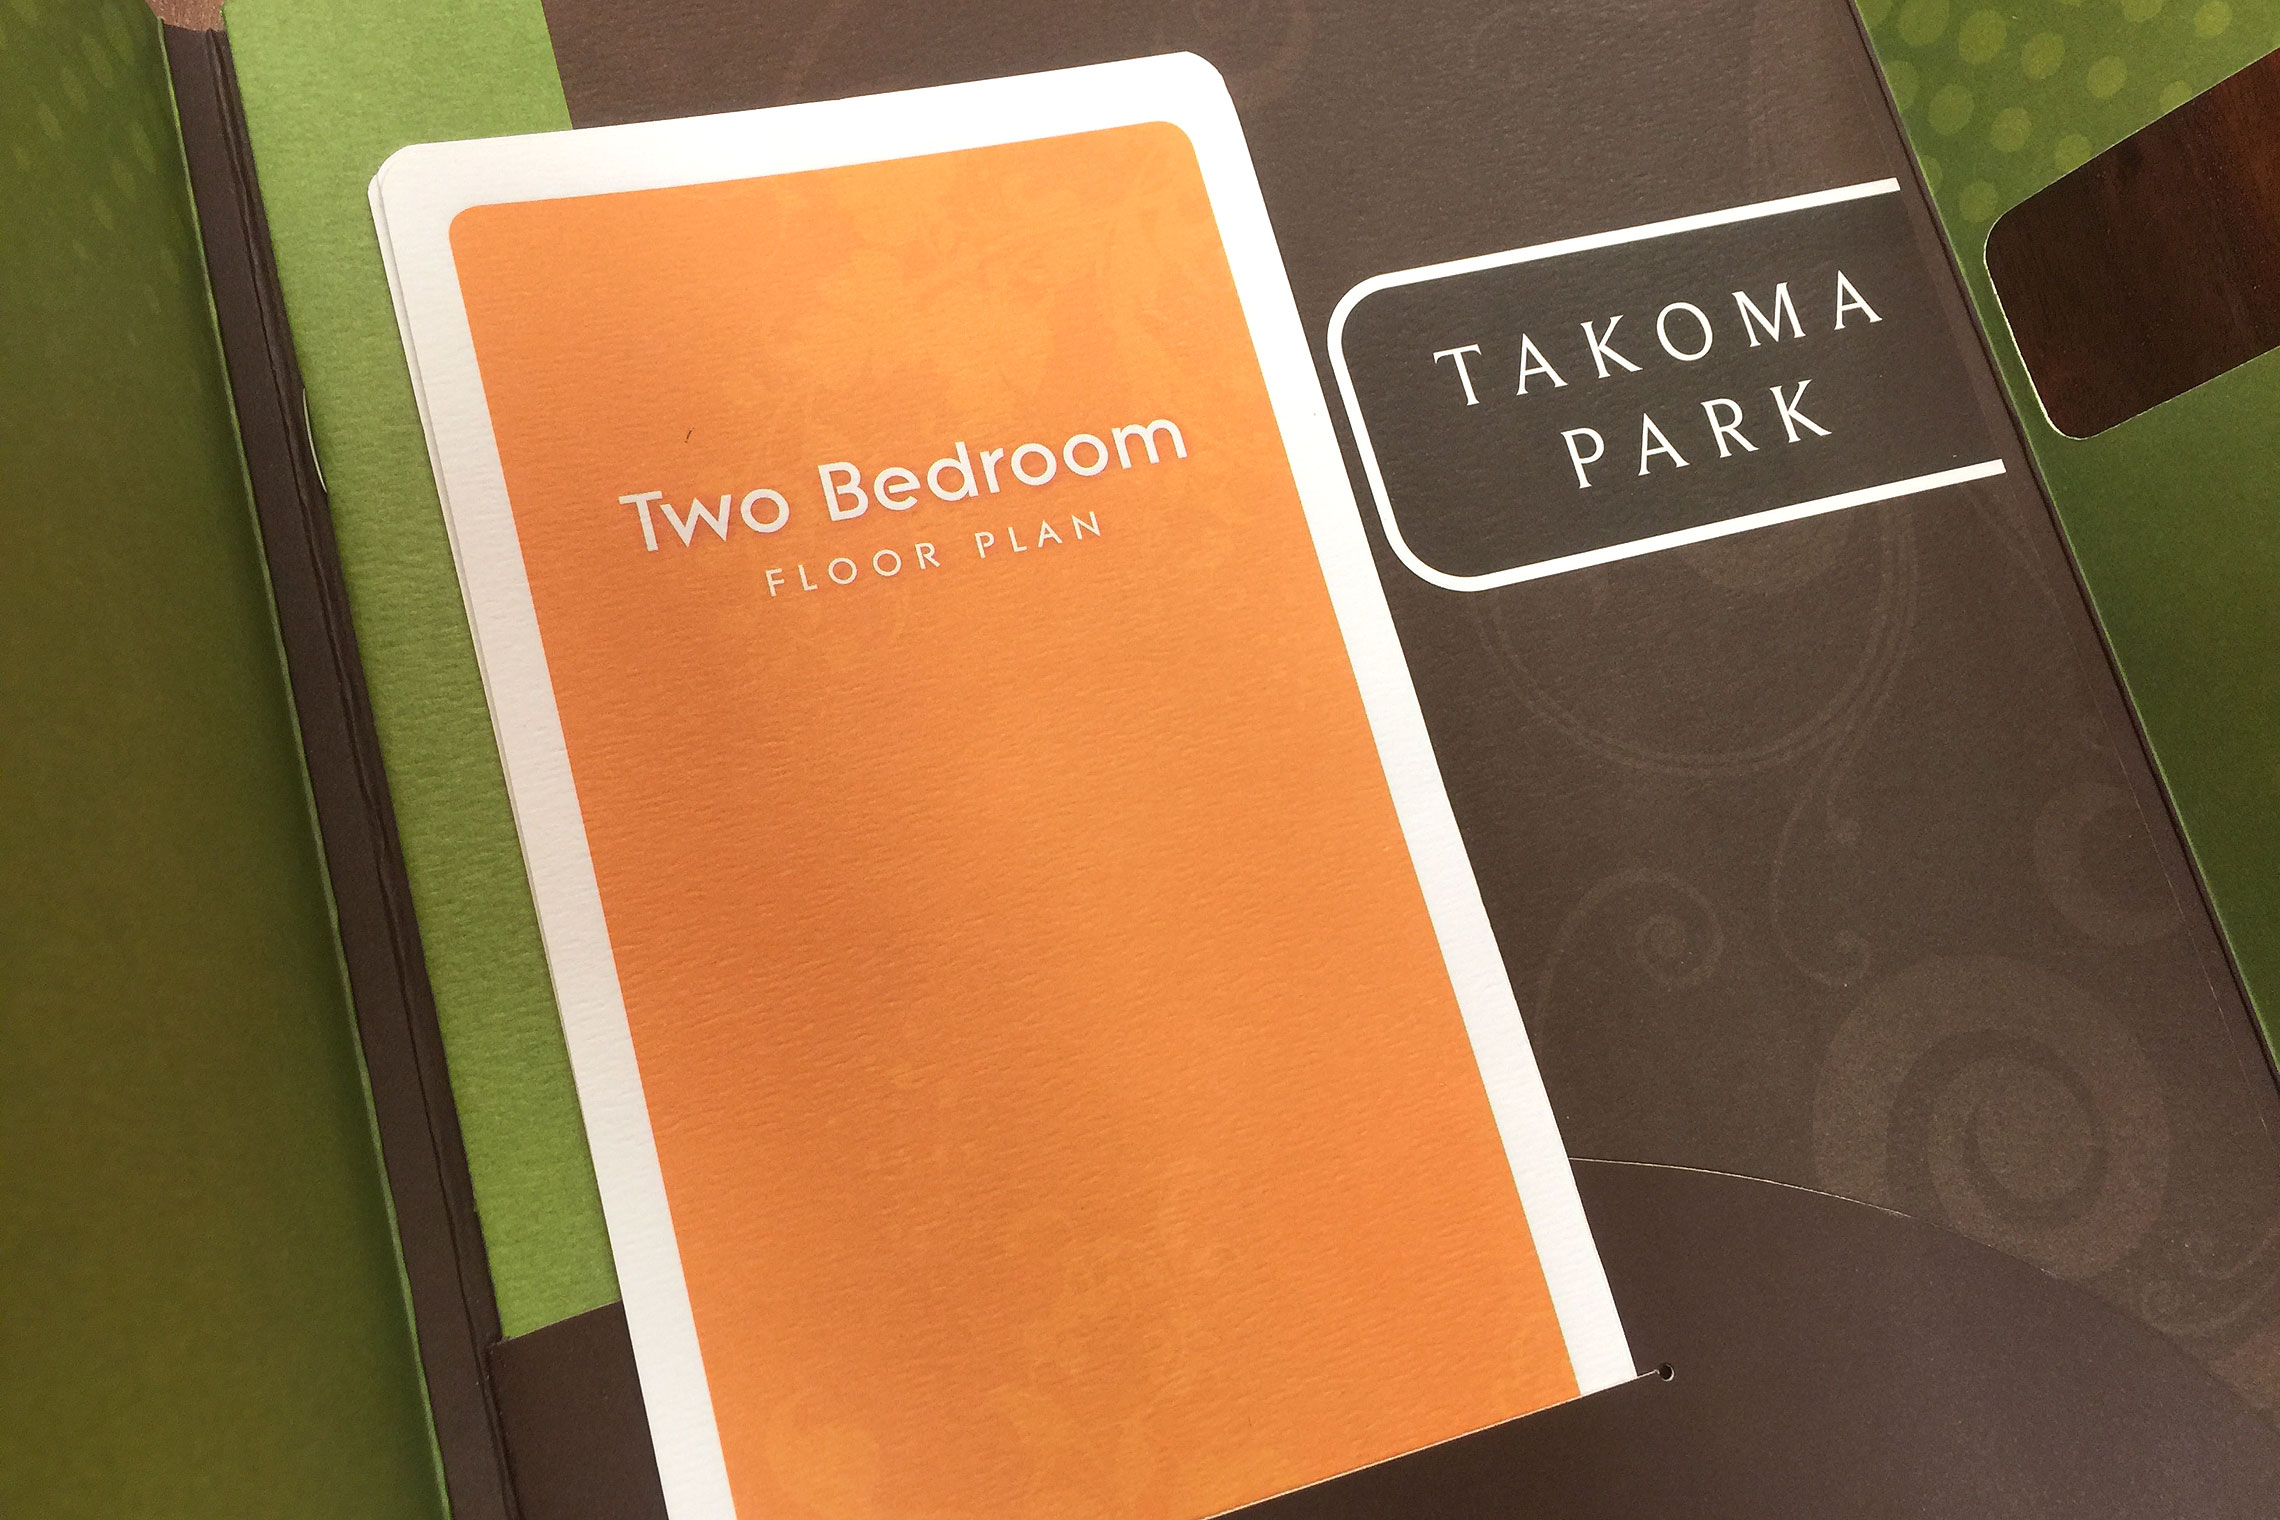 Gables Takoma Park Collateral - Floor Plan Inserts in Pocket Folder Brochure